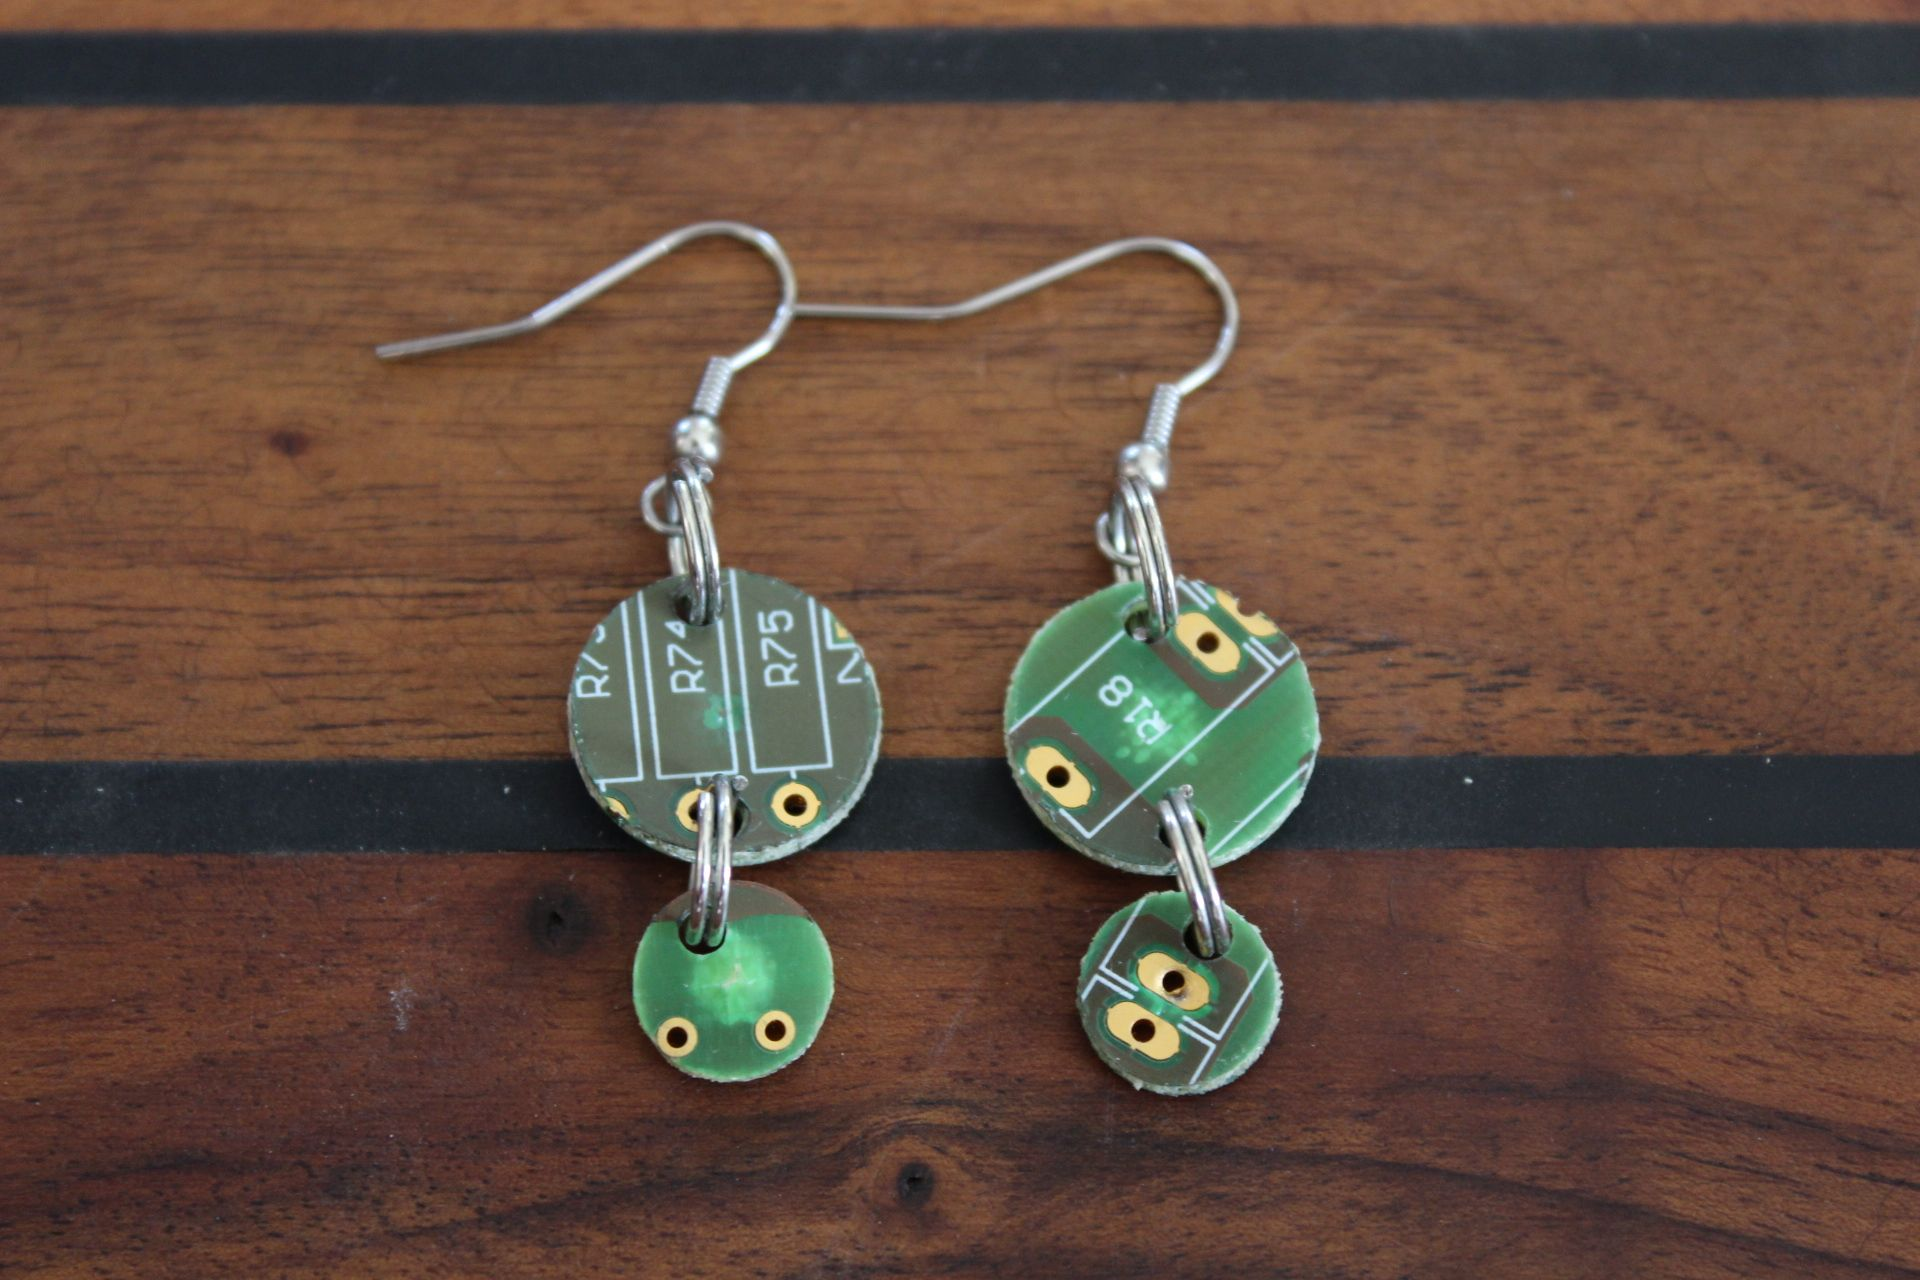 Selfmade Recycling Earrings Made Of Old Pcbs Ohrstecker Selber Aus Circuit Boards Upcycled Into Jewels Recycled Electronic Waste Elektroschrott Leiterplatten Leiterkarten Printplatten Gemacht